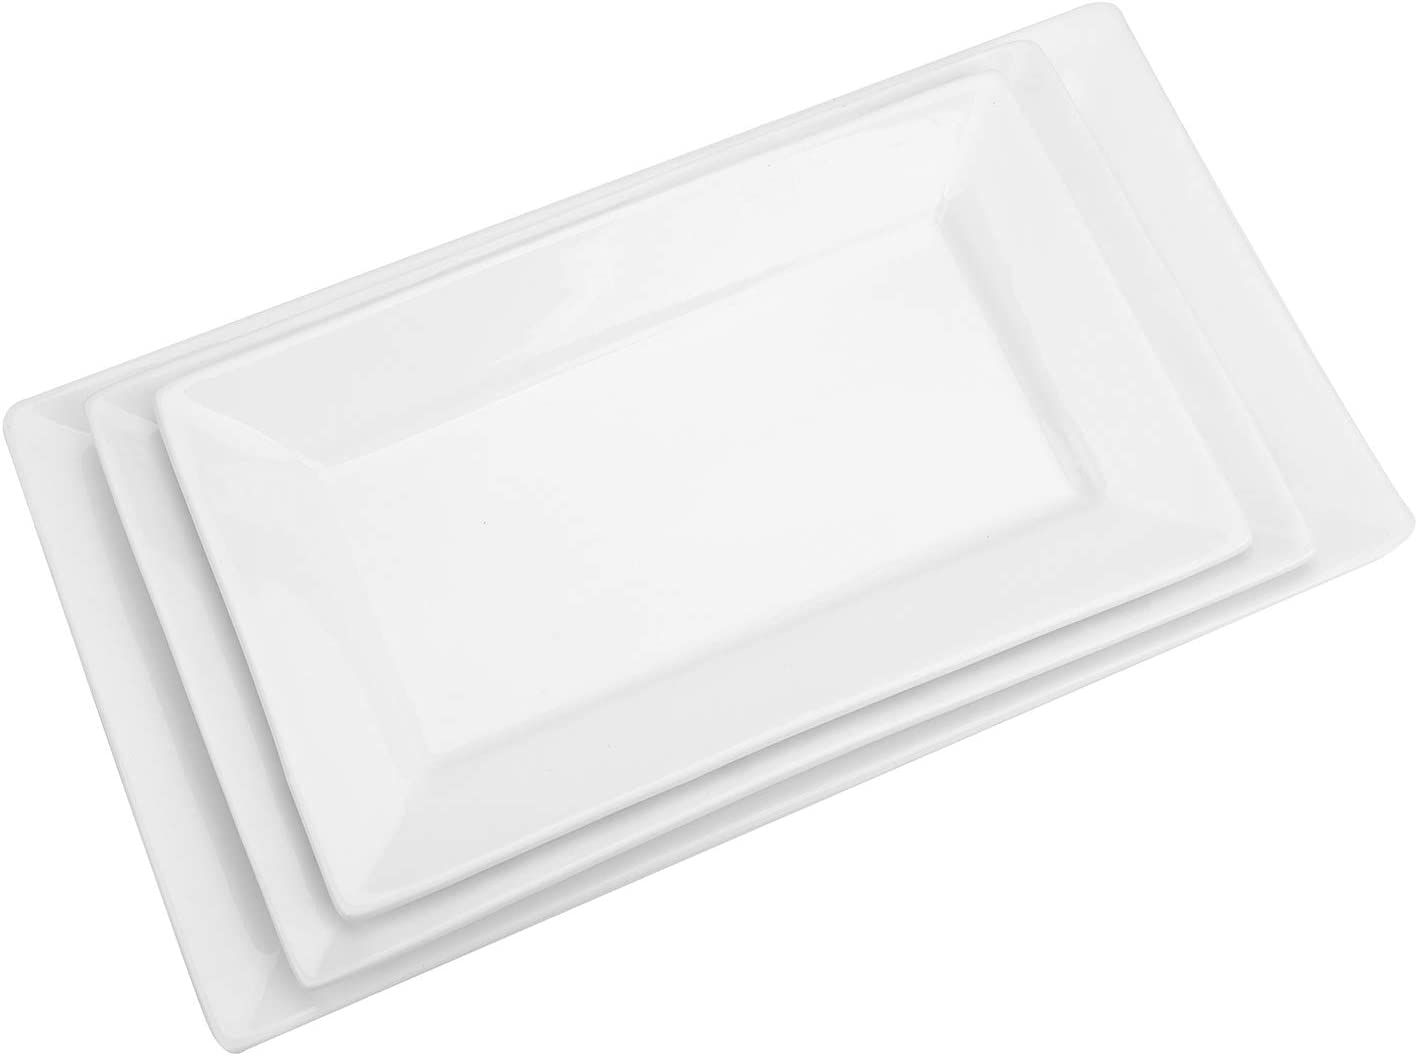 Suwimut 3 Pack Porcelain Serving Platters, Large White Rectangular Trays for Parties, Large, Medium, Small Size, Microwave And Dishwasher Safe